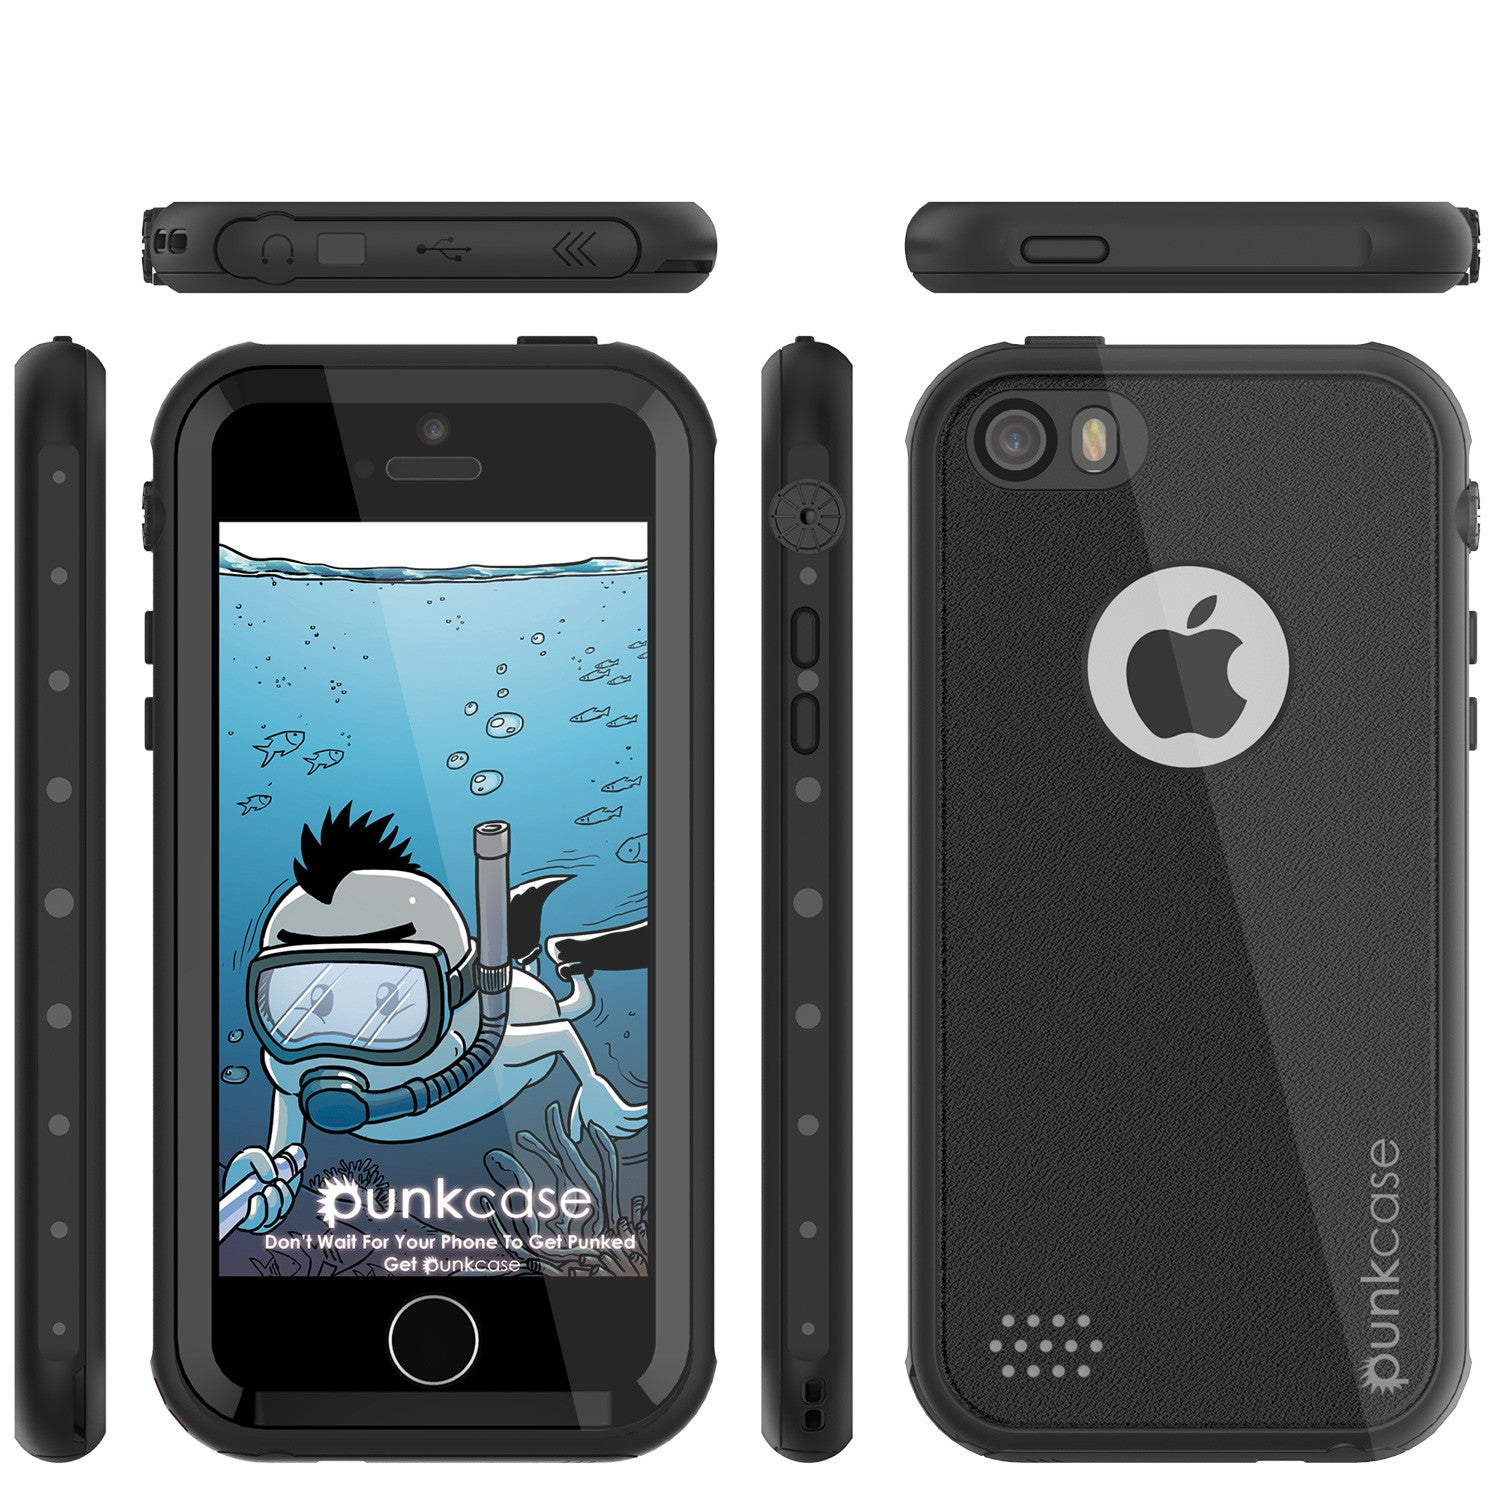 iPhone SE/5S/5 Waterproof Case, PunkCase StudStar Black, Shock/Dirt/Snow Proof | Lifetime Warranty